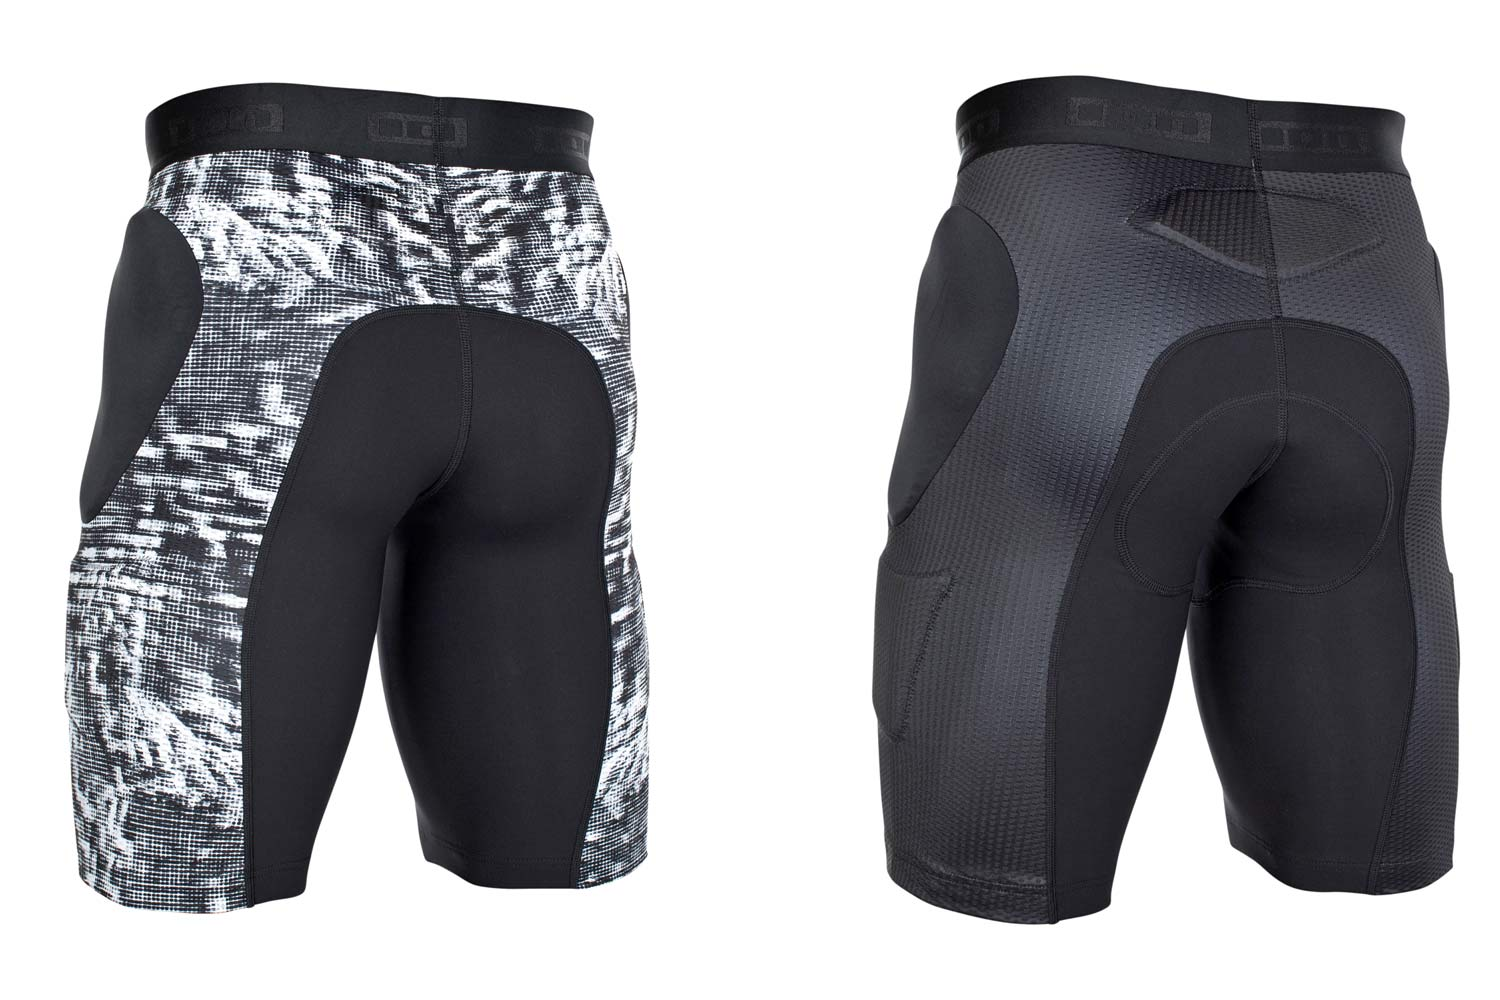 ION Scrub Amp protection body armor, lightweight low-profile mountain bike padding in shorts jersey and vest